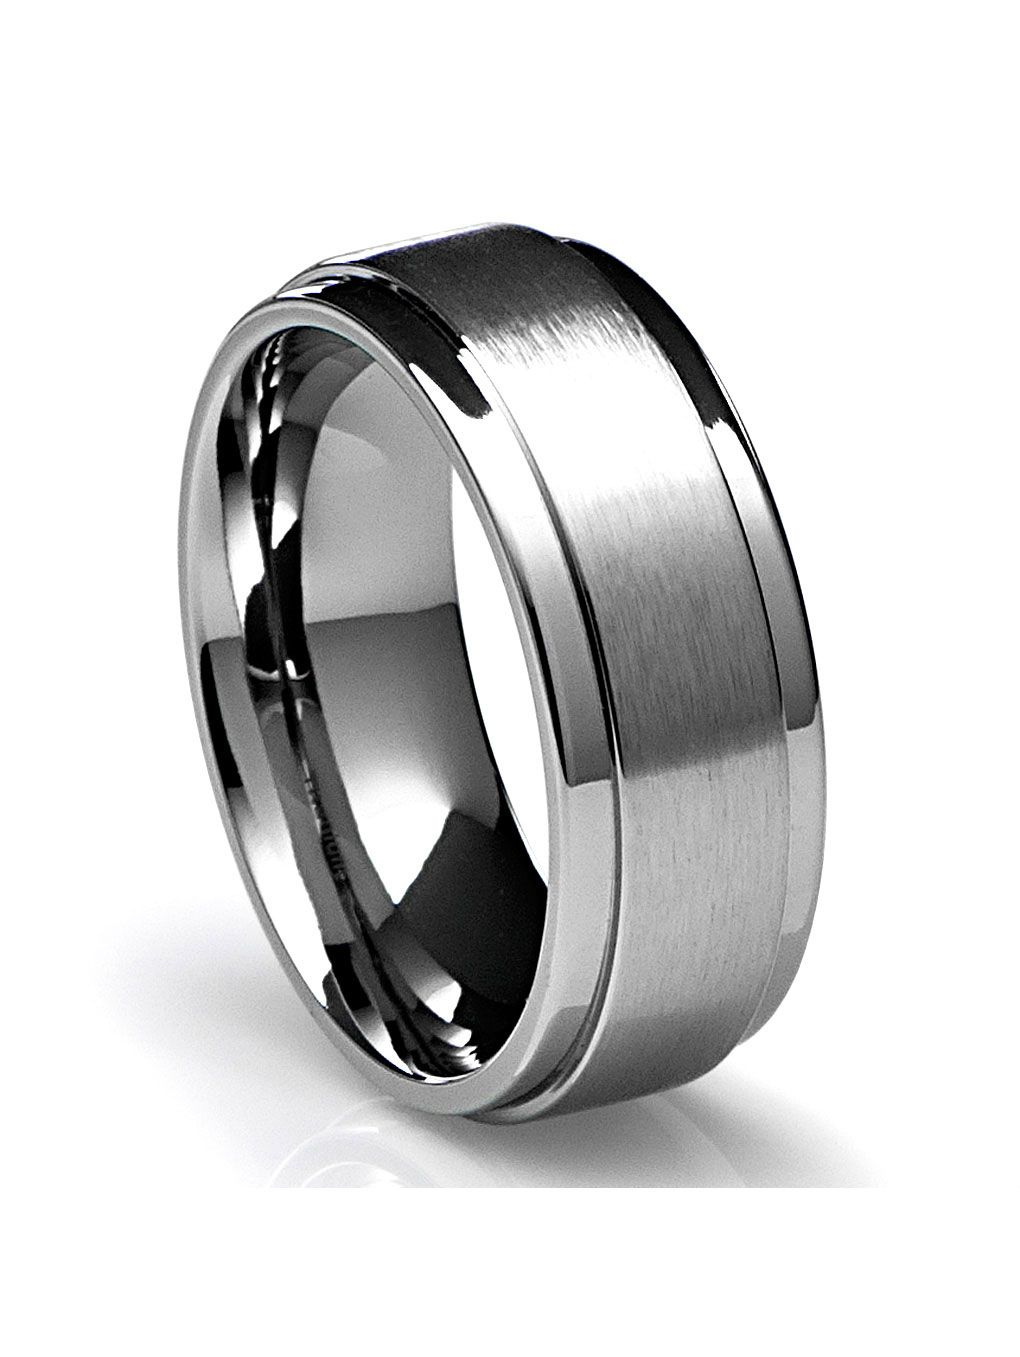 Cavalier Jewelers Mens Wedding Band In Titanium 8mm Ring With Flat Brushed Top And Polished Finish Edges Walmart Com In 2020 Wedding Ring Bands Titanium Rings For Men Mens Wedding Rings